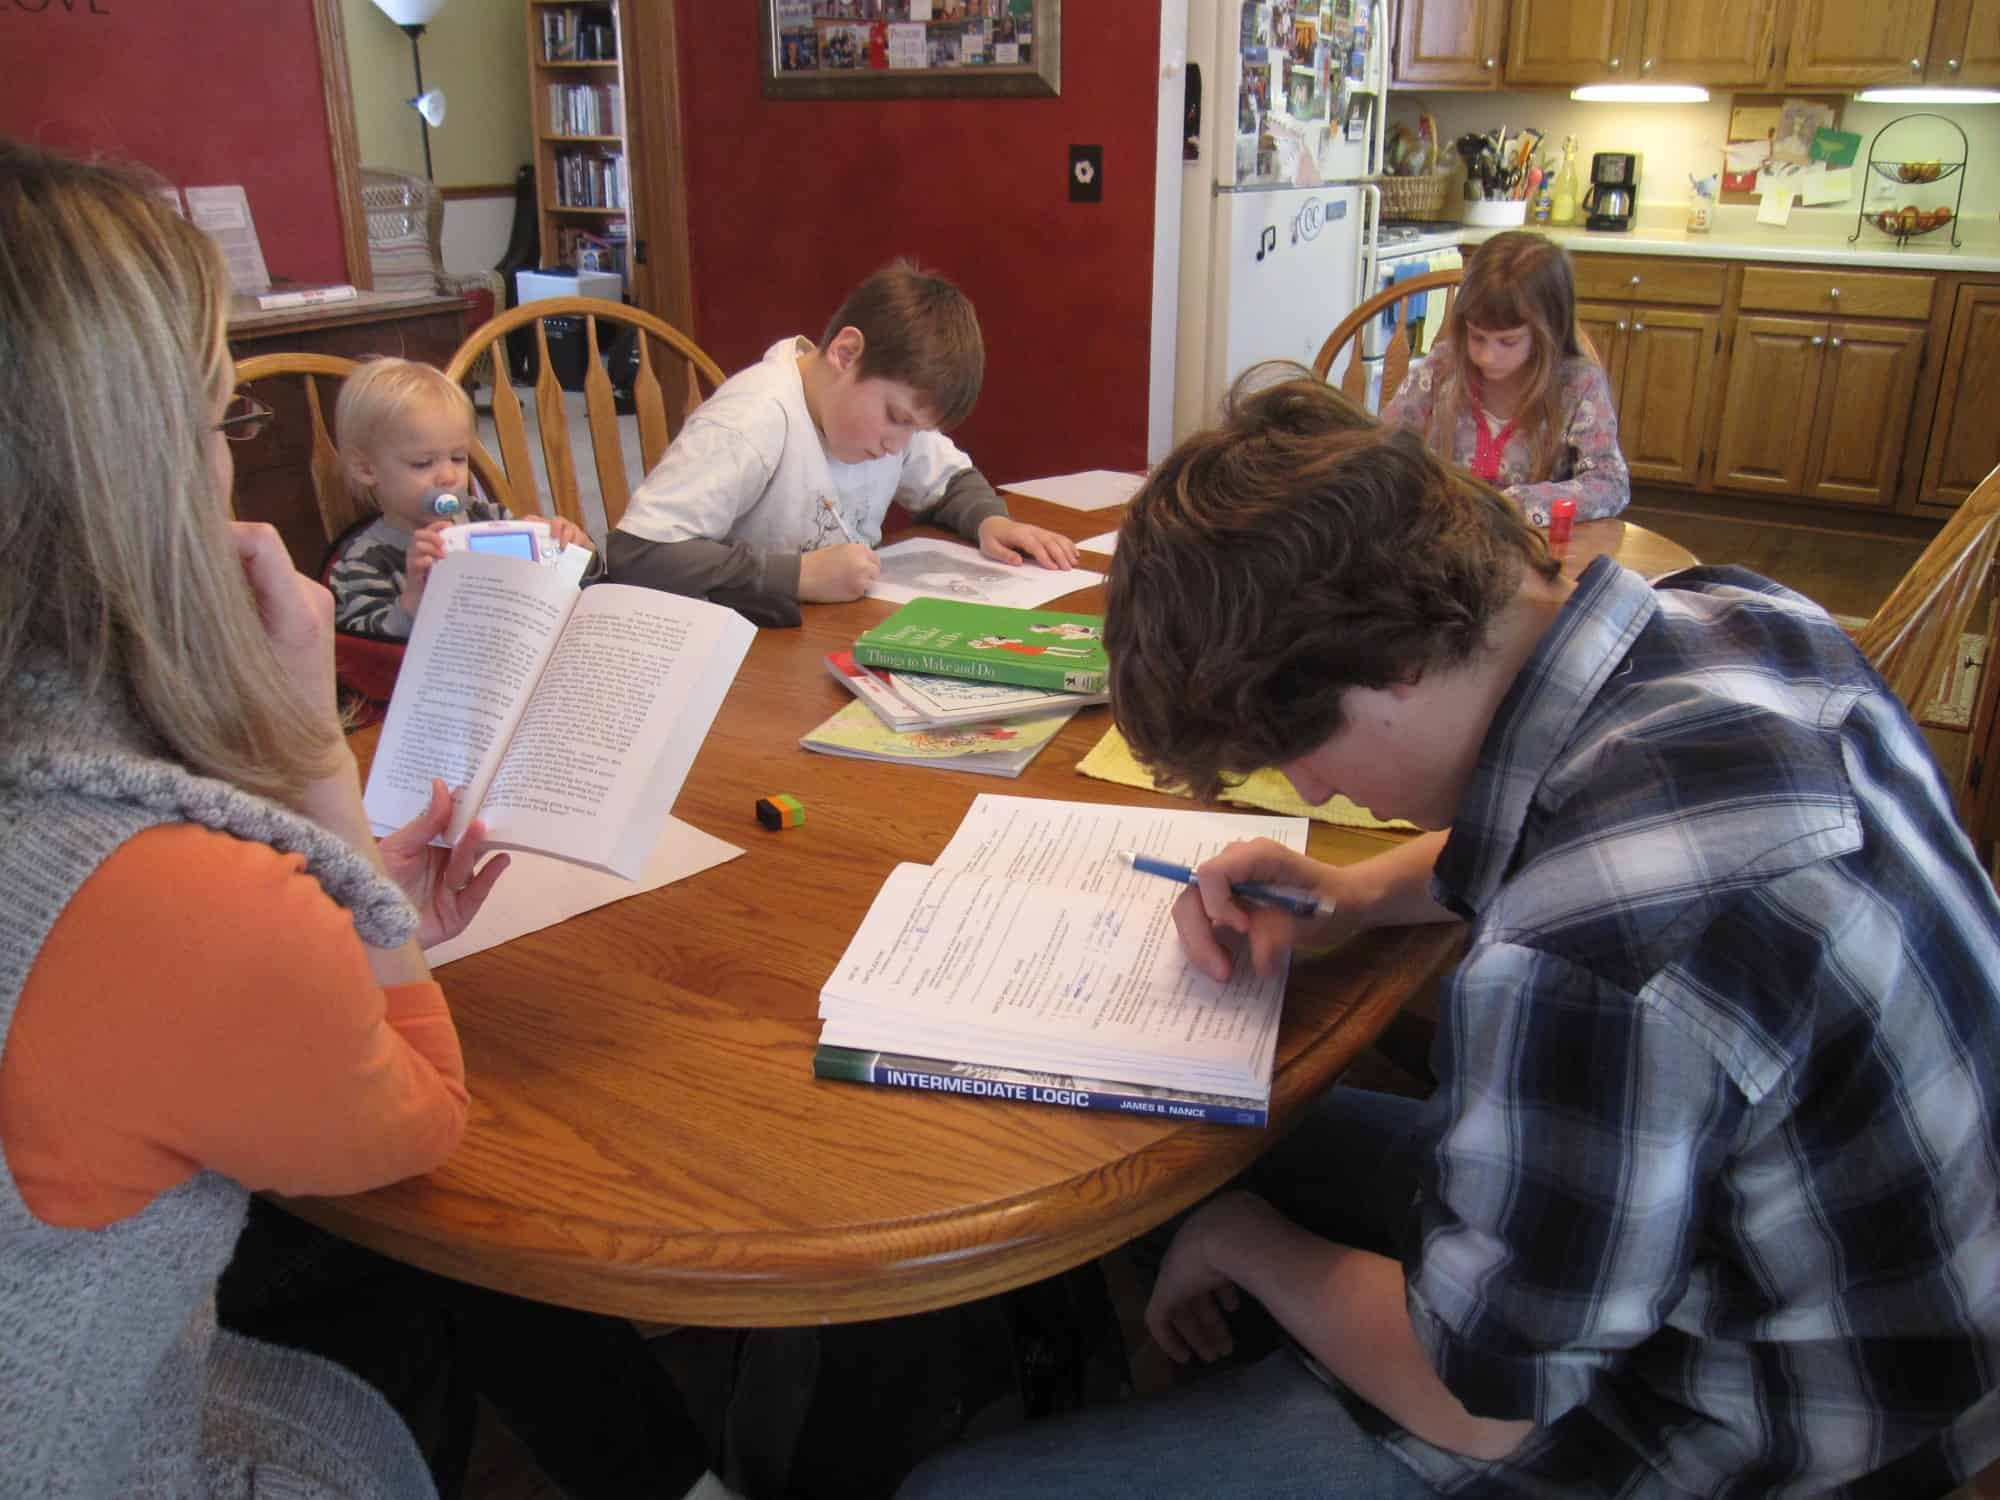 students sitting around the dining room table working on their classes. Mom is reading.